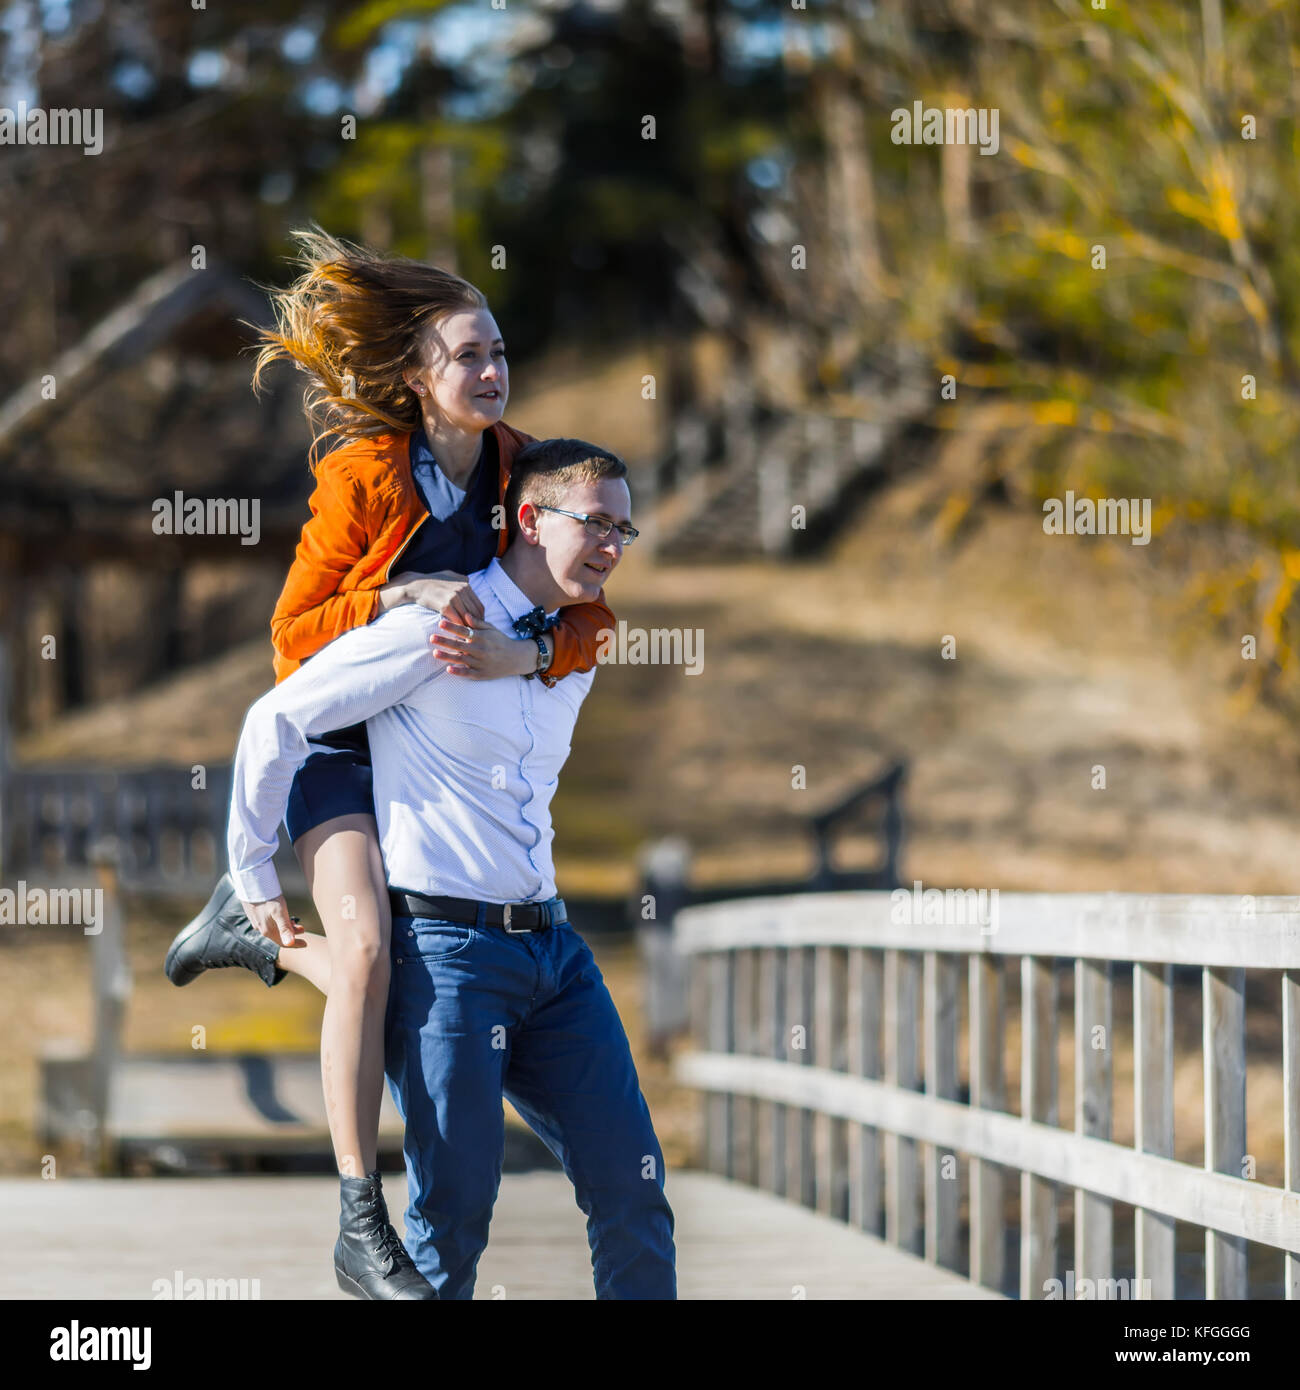 Happy man carrying his girlfriend on the back on on the bridge over the river. - Stock Image